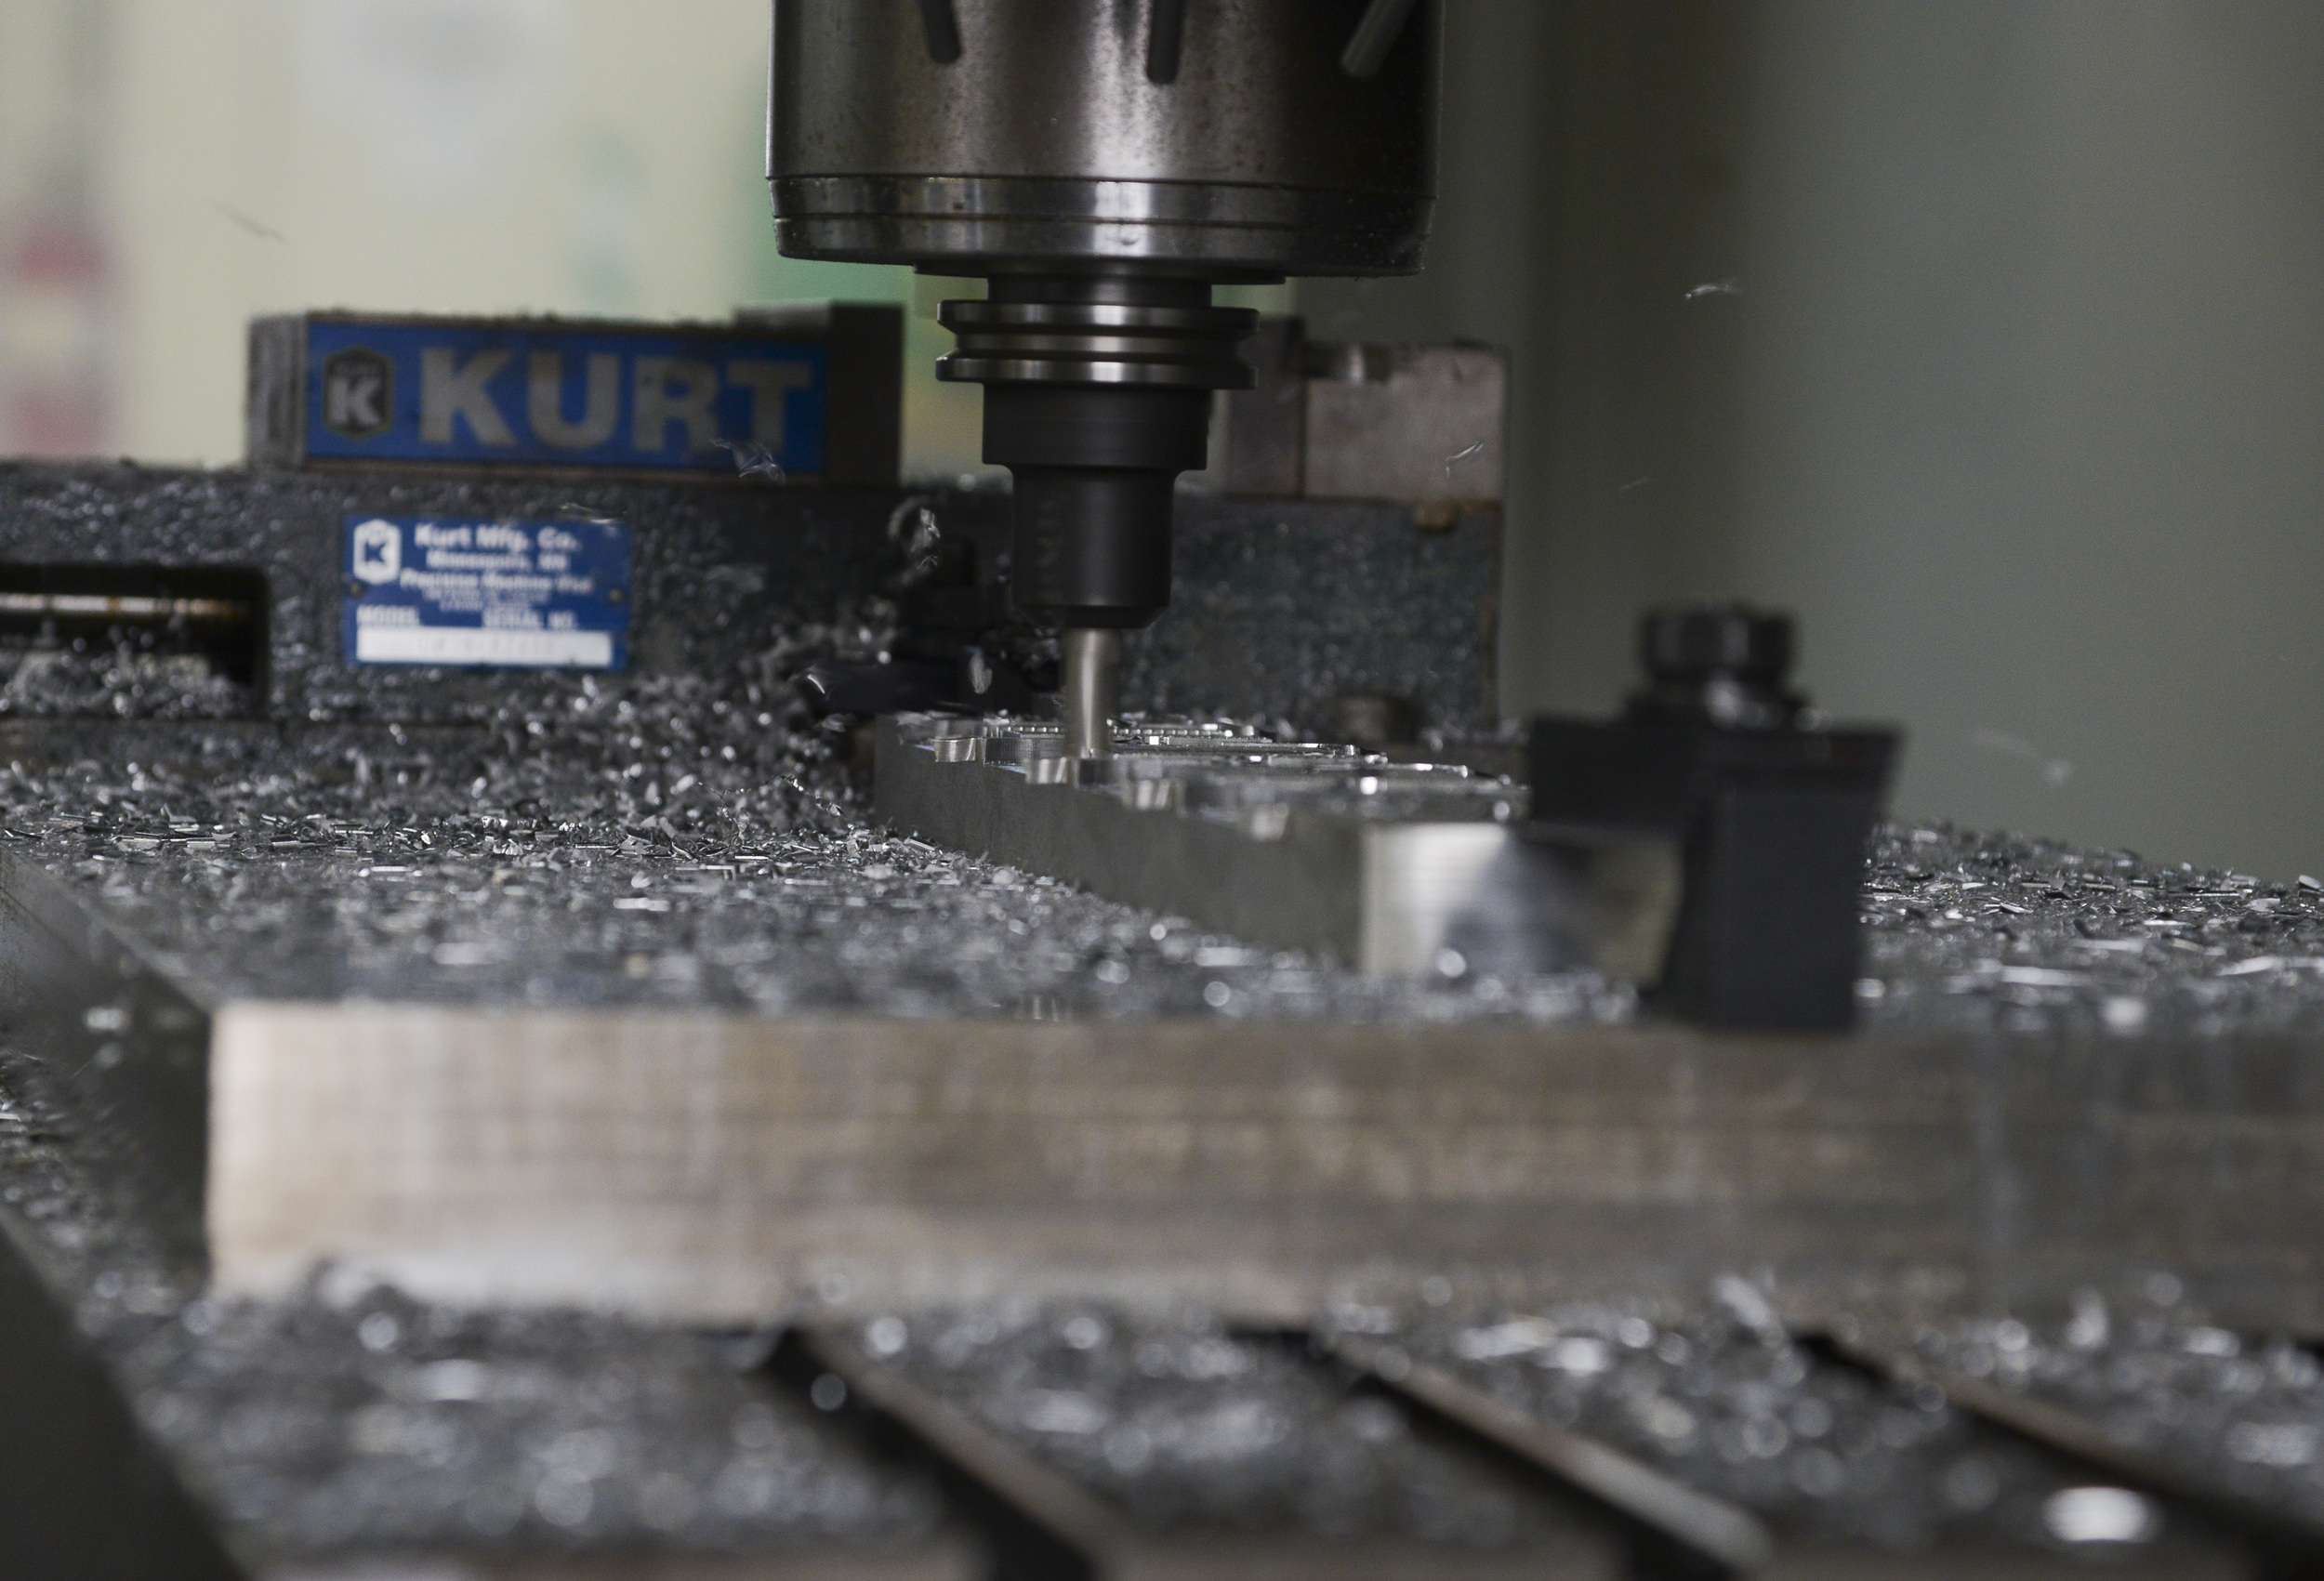 A computer numeric controller router creates a C-130 Hercules crew door arm clamp in the fabrication shop at Yokota Air Base, Japan, June 23, 2015. A CNC router is a computer controlled cutting machine related to the hand held router used for cutting various hard materials, such as wood, composites, aluminium, steel, plastics and foams. (U.S. Air Force photo by Senior Airman David Owsianka/Released)